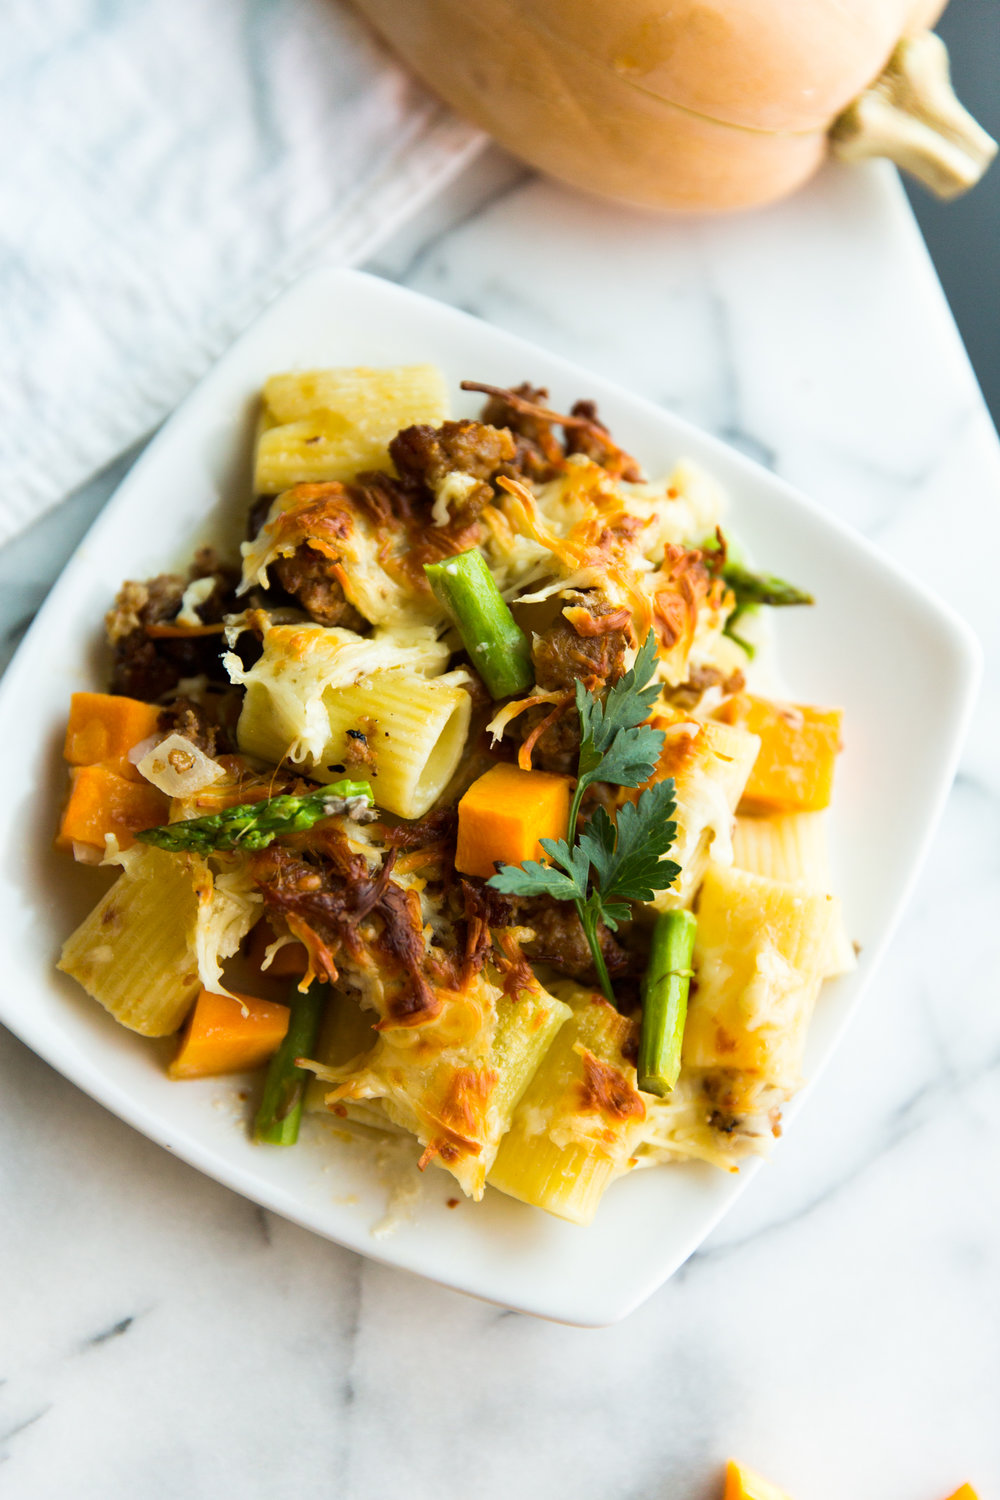 fond life sprouts recipe baked pasta-6.jpg